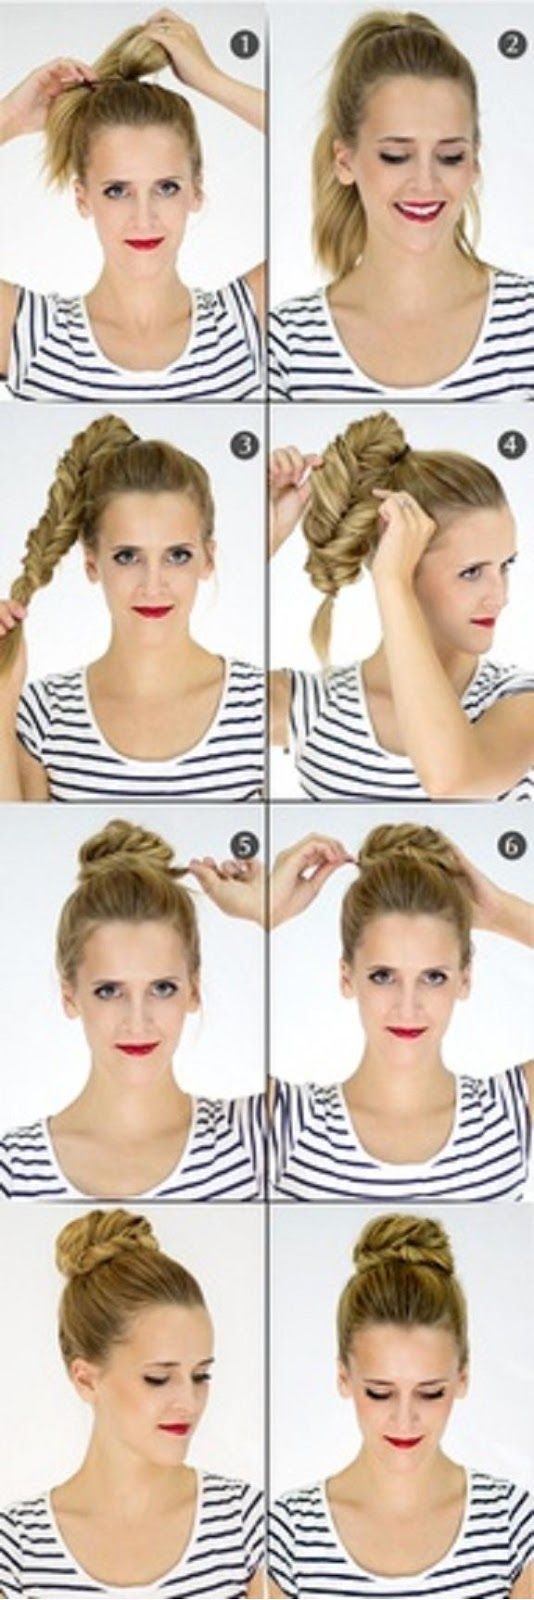 easy summer hair styles 21 best images about highland style on 3864 | 14af7edaca915b92d470b3411b3ff87c fishtail braid buns how to fishtail